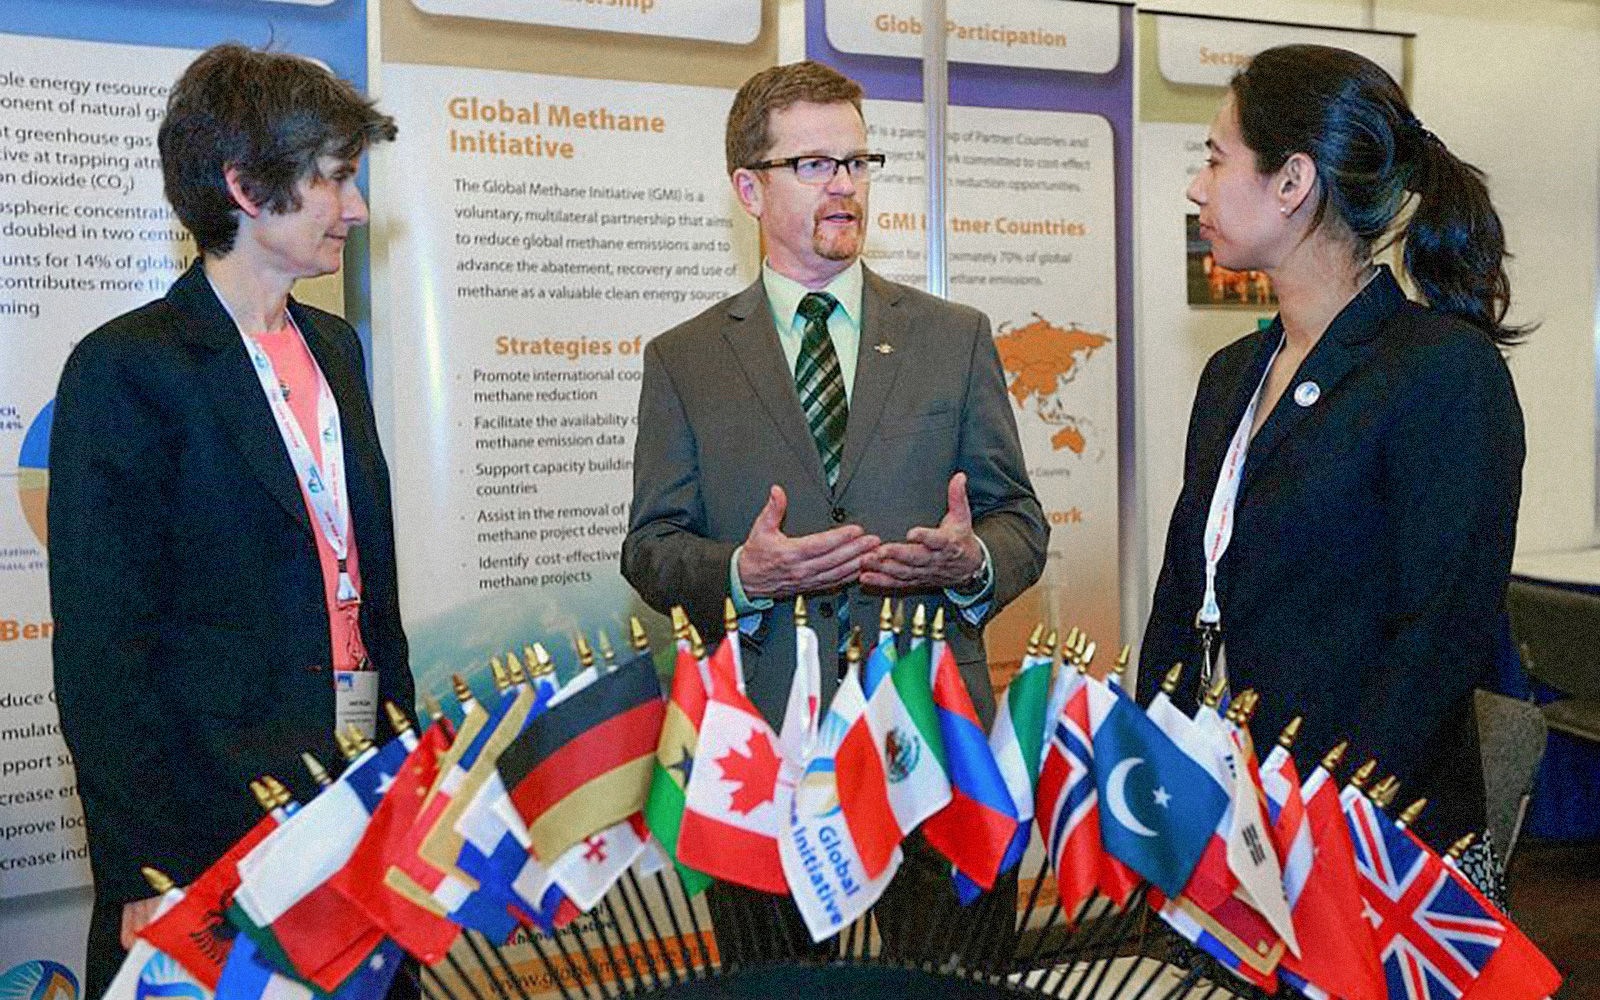 Three professionals stand and talk in front of a poster display about the Global Methane Initiative